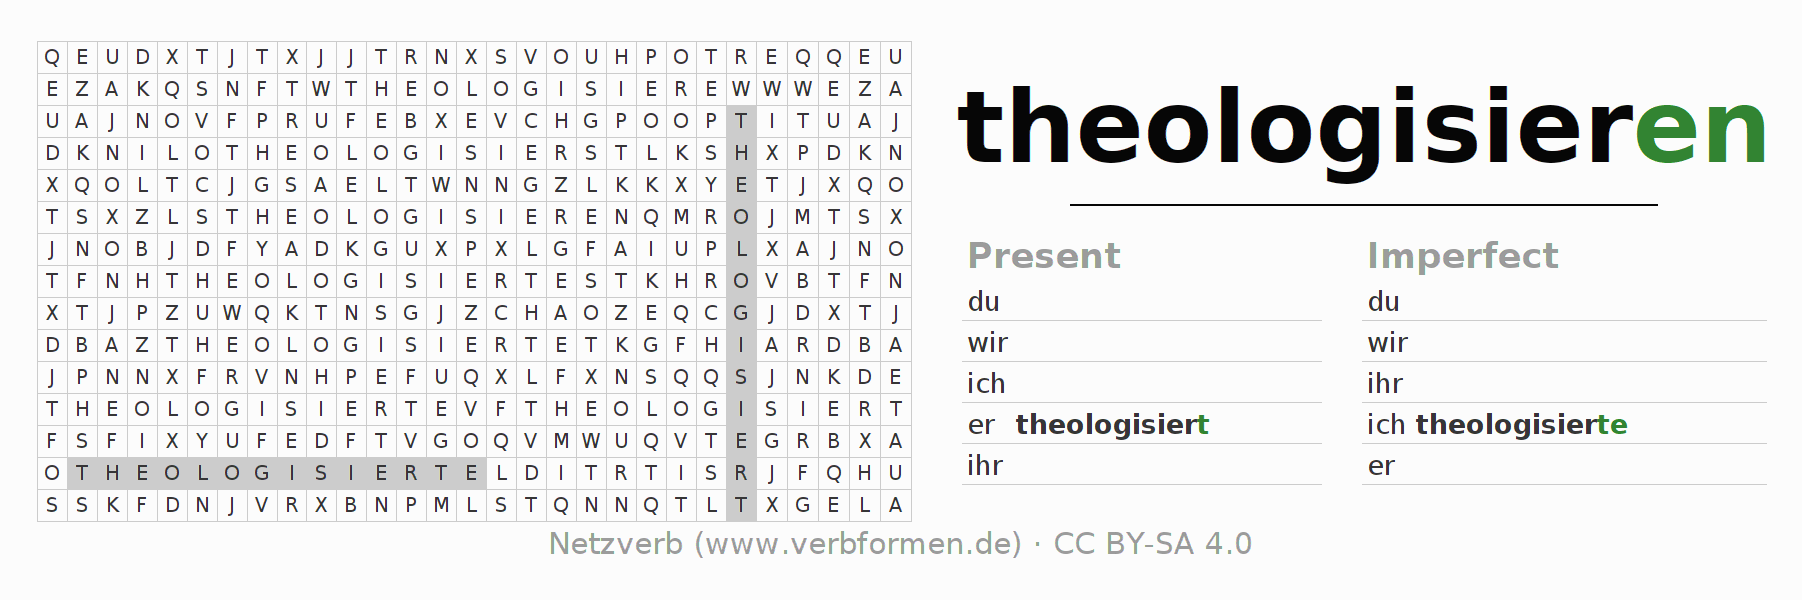 Word search puzzle for the conjugation of the verb theologisieren